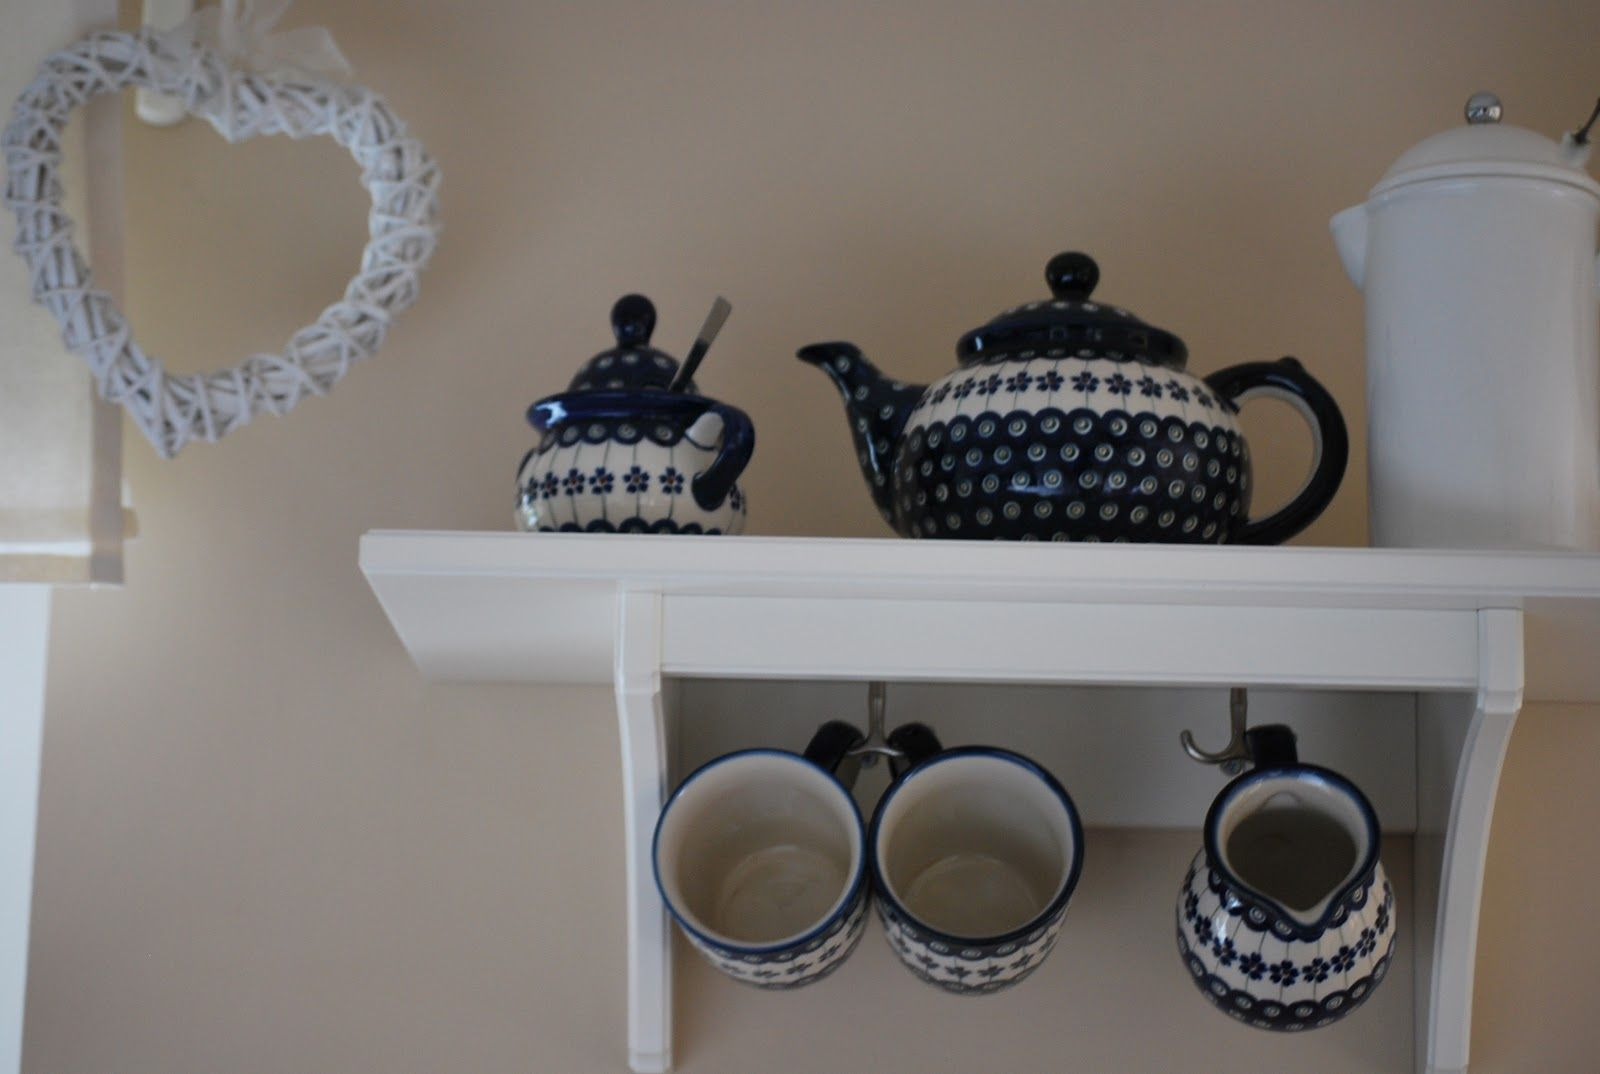 White & Blue ceramics from Poland.